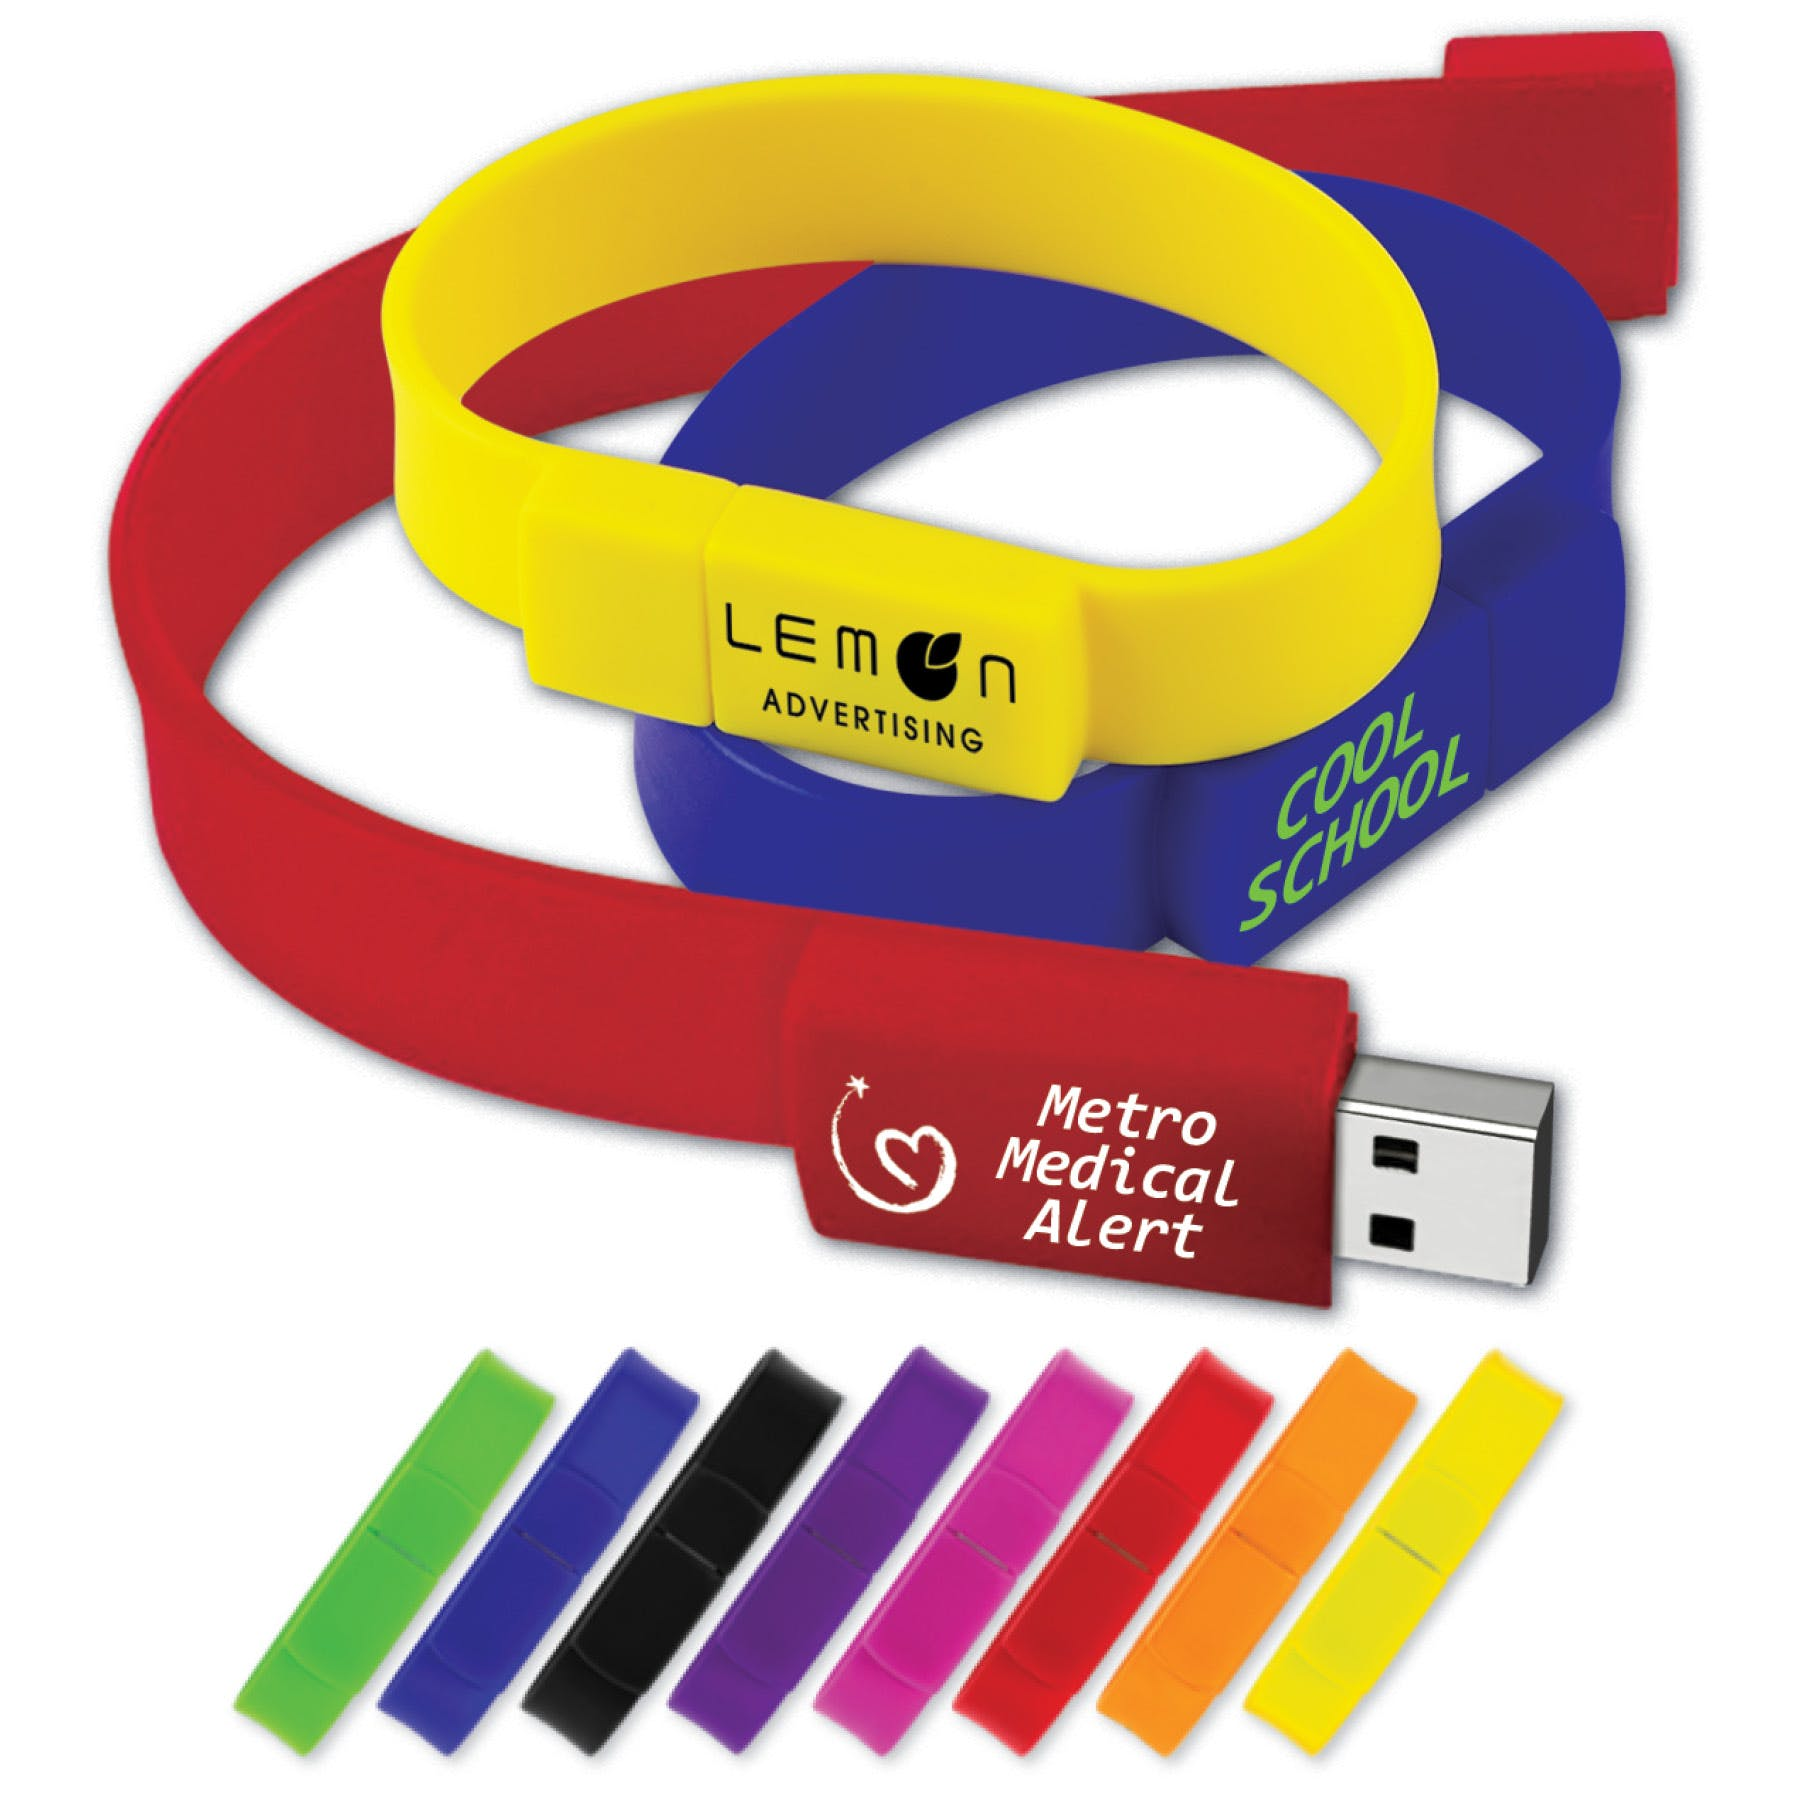 USB 2.0 Wristband Drive (Item # ZDJOR-JUDHM) Promotional flash drive sold by InkEasy